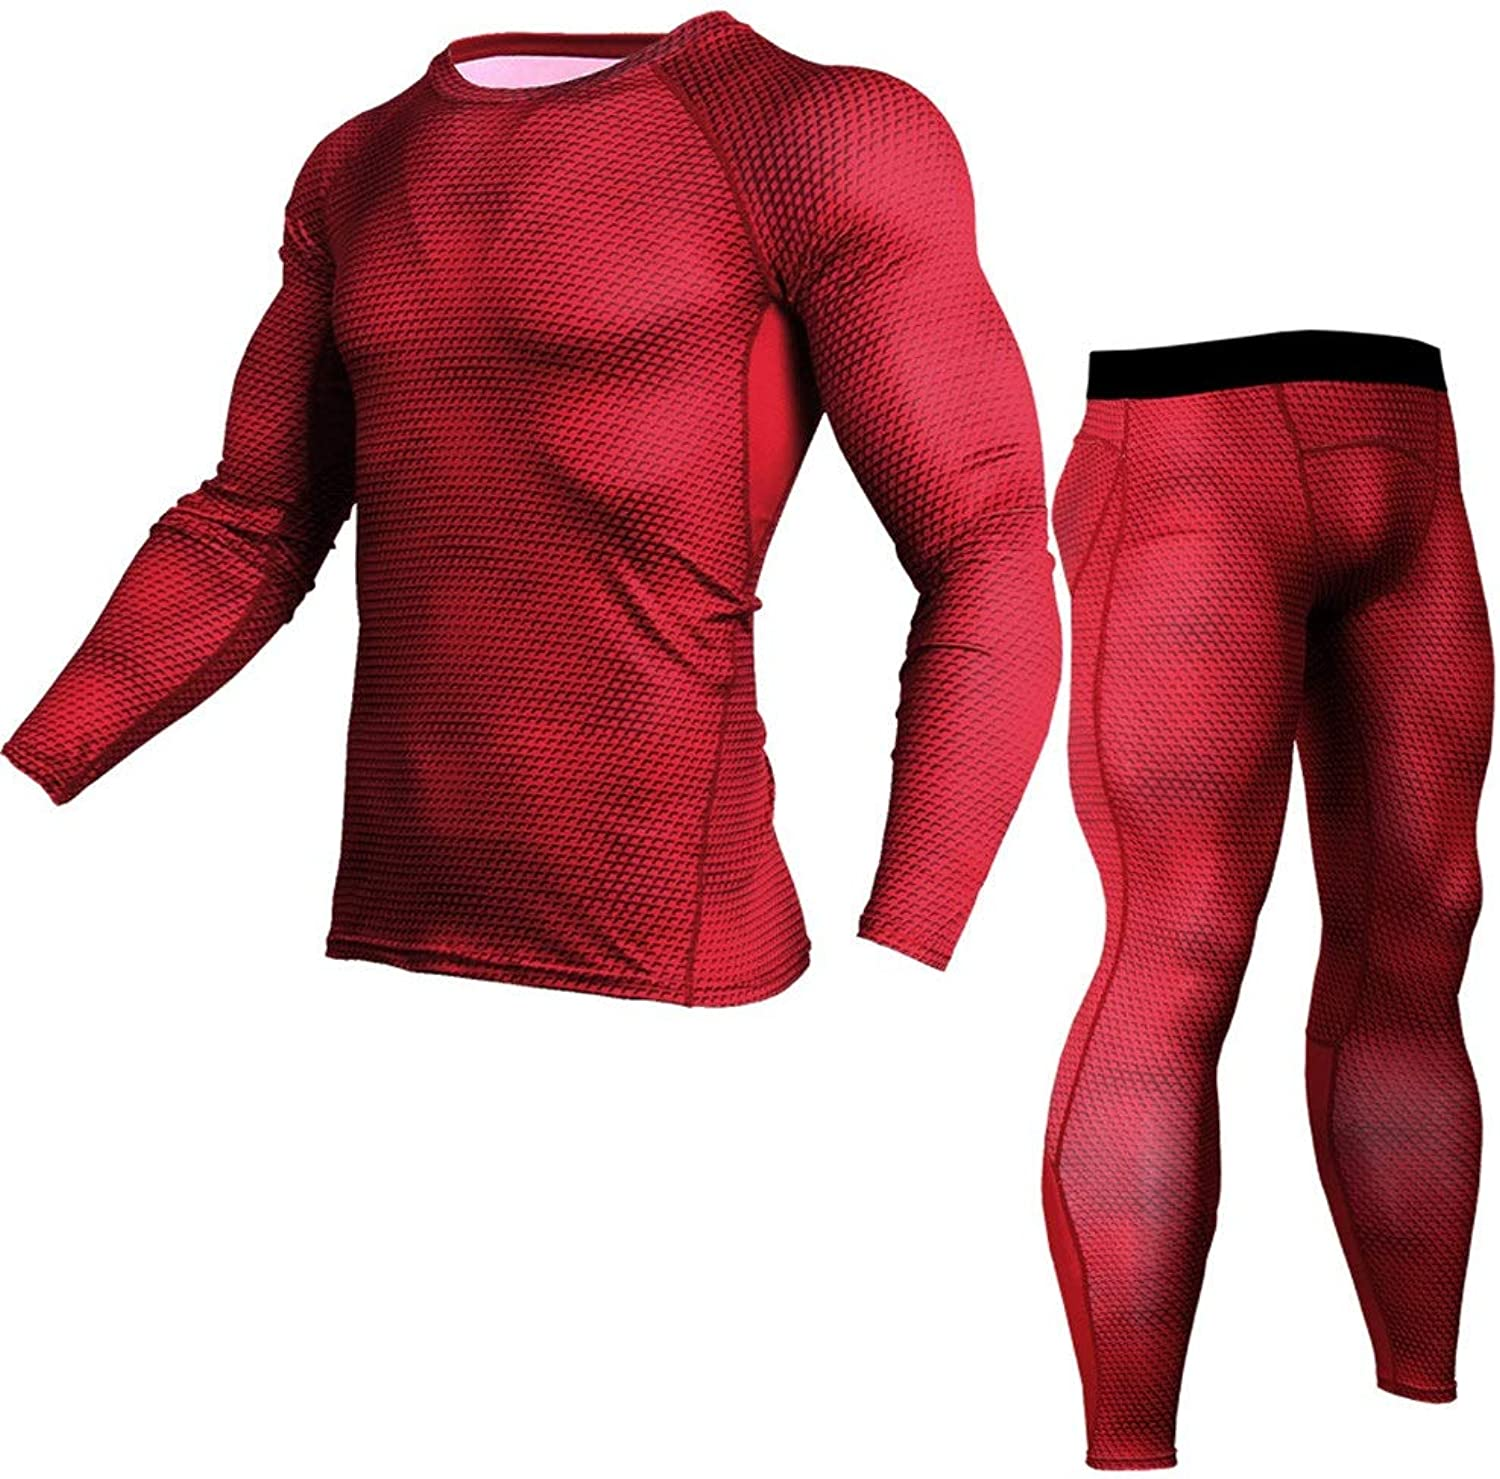 Fitness Clothing Workout Tracksuit Mens Long Sleeve Base Layers Shirts+Compression Pants for Workout Training Running (color   Red, Size   L)